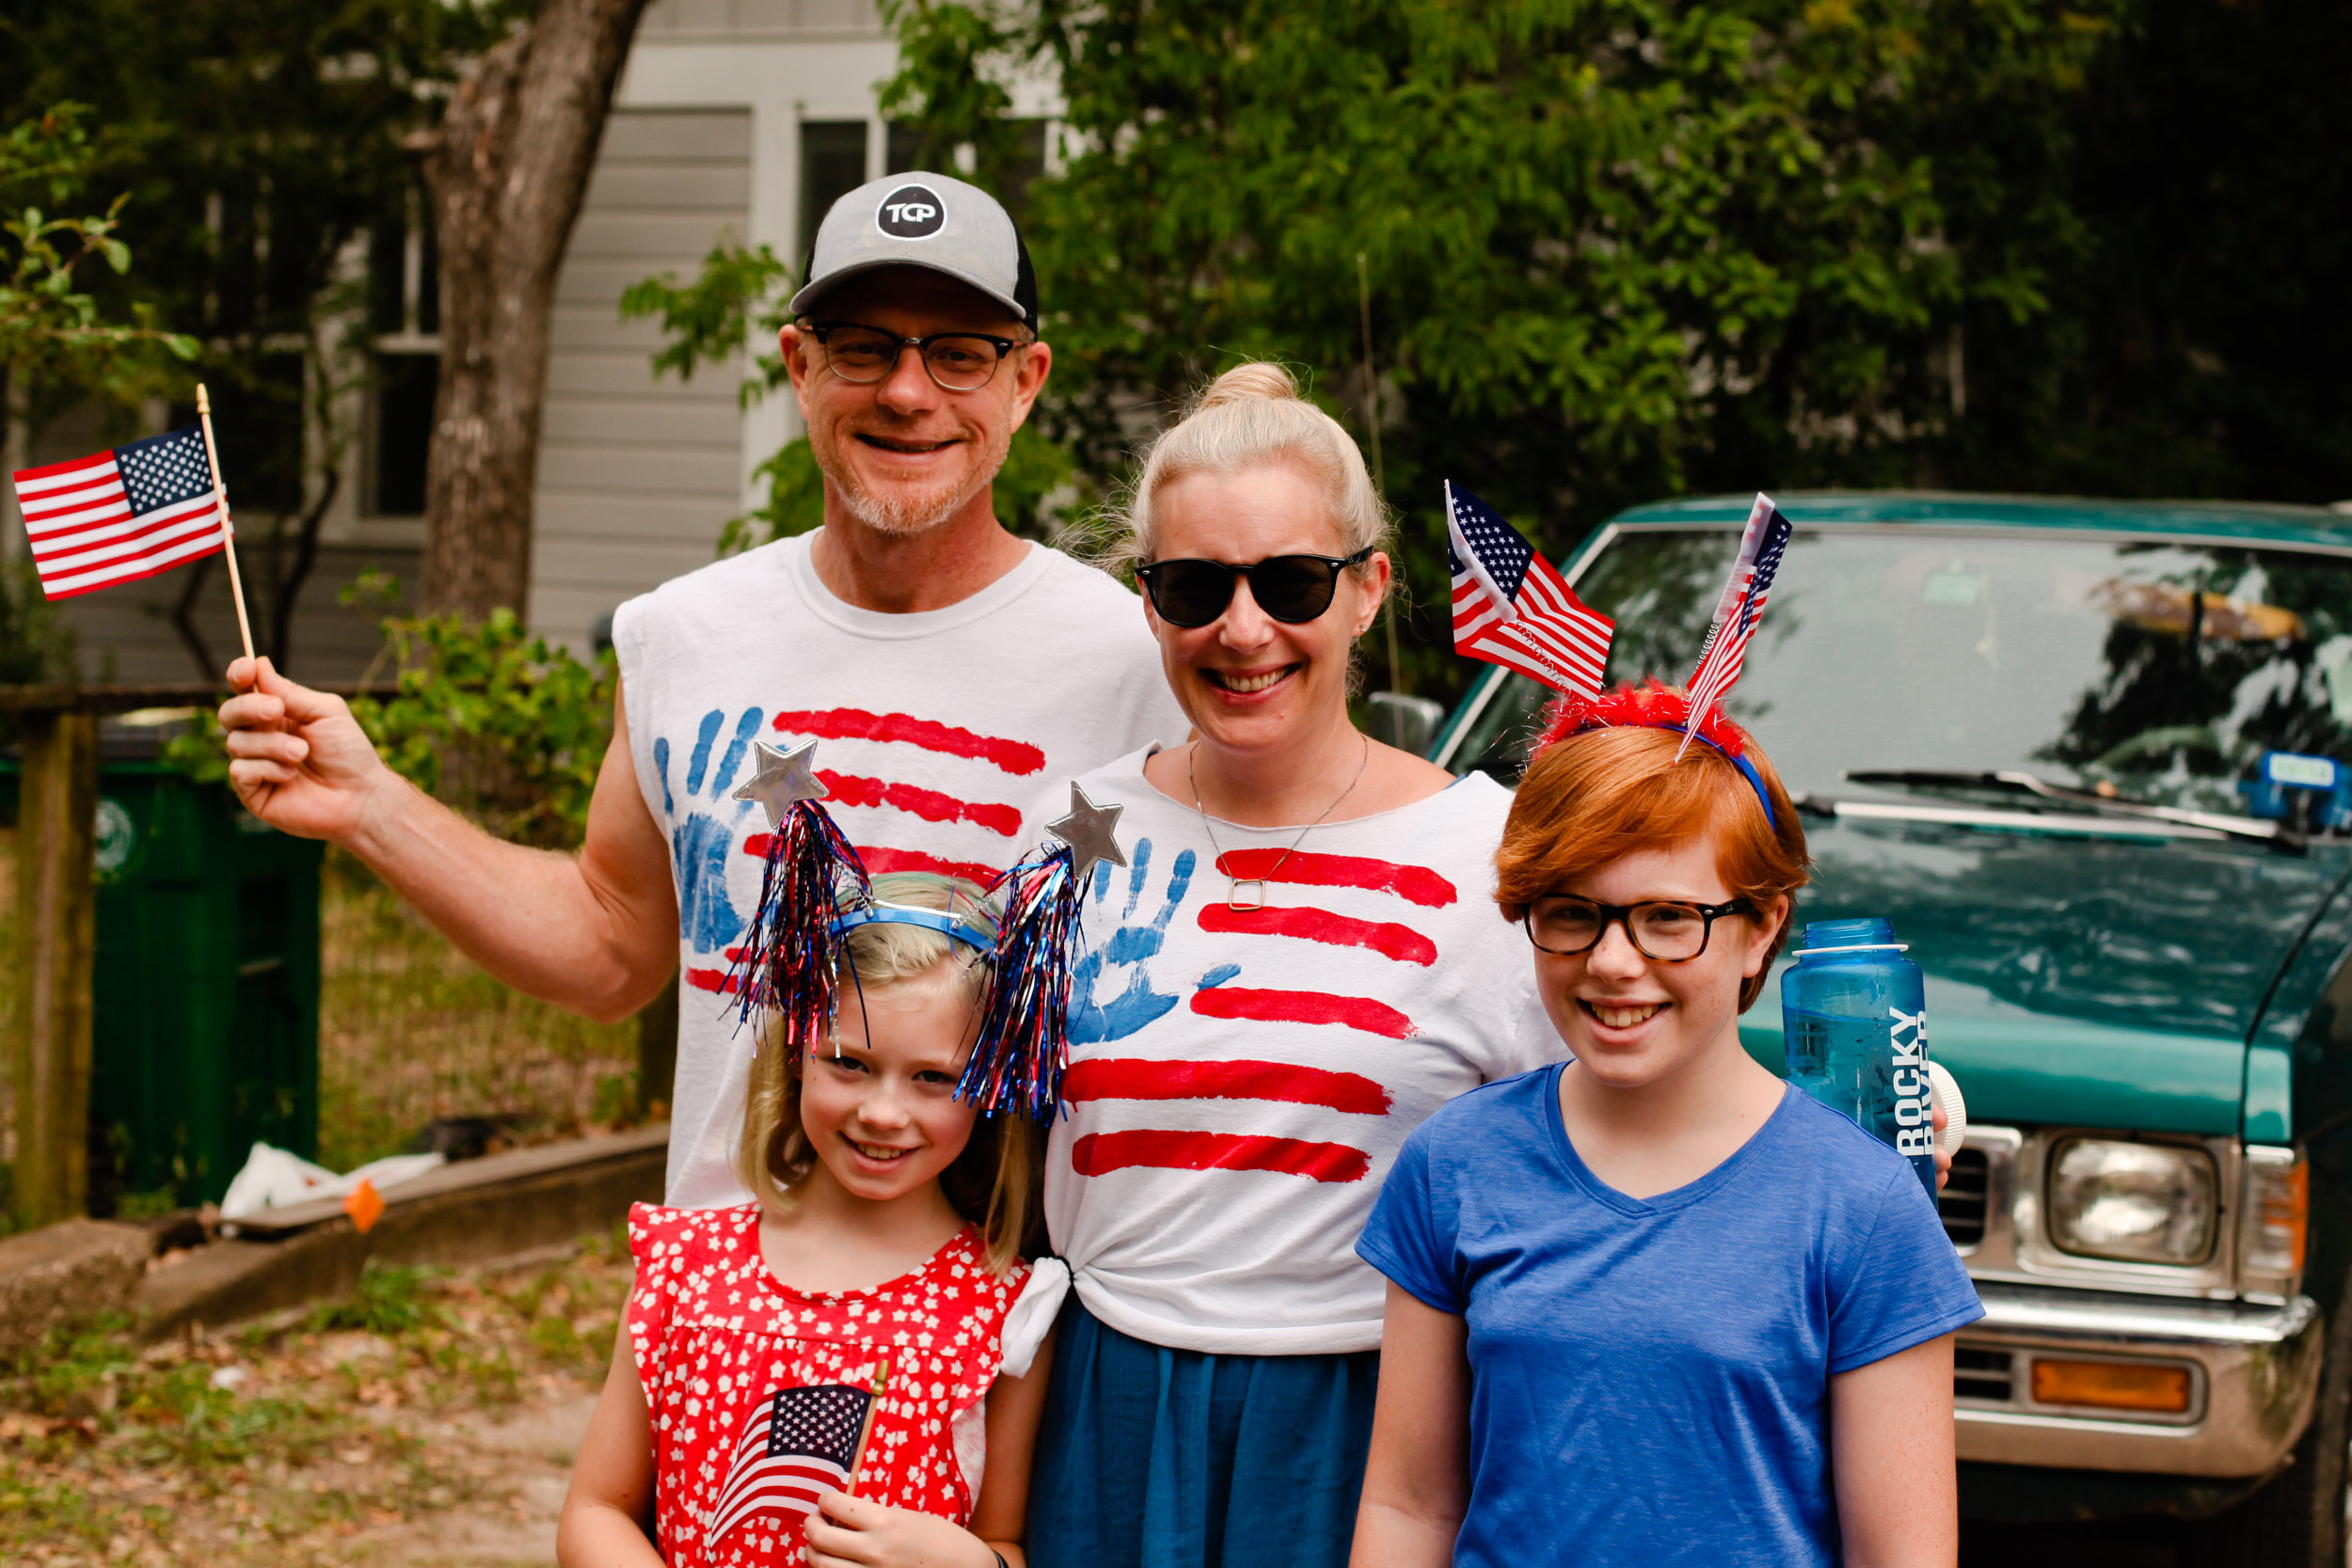 4th of July Parade 2018-24.edw.jpg